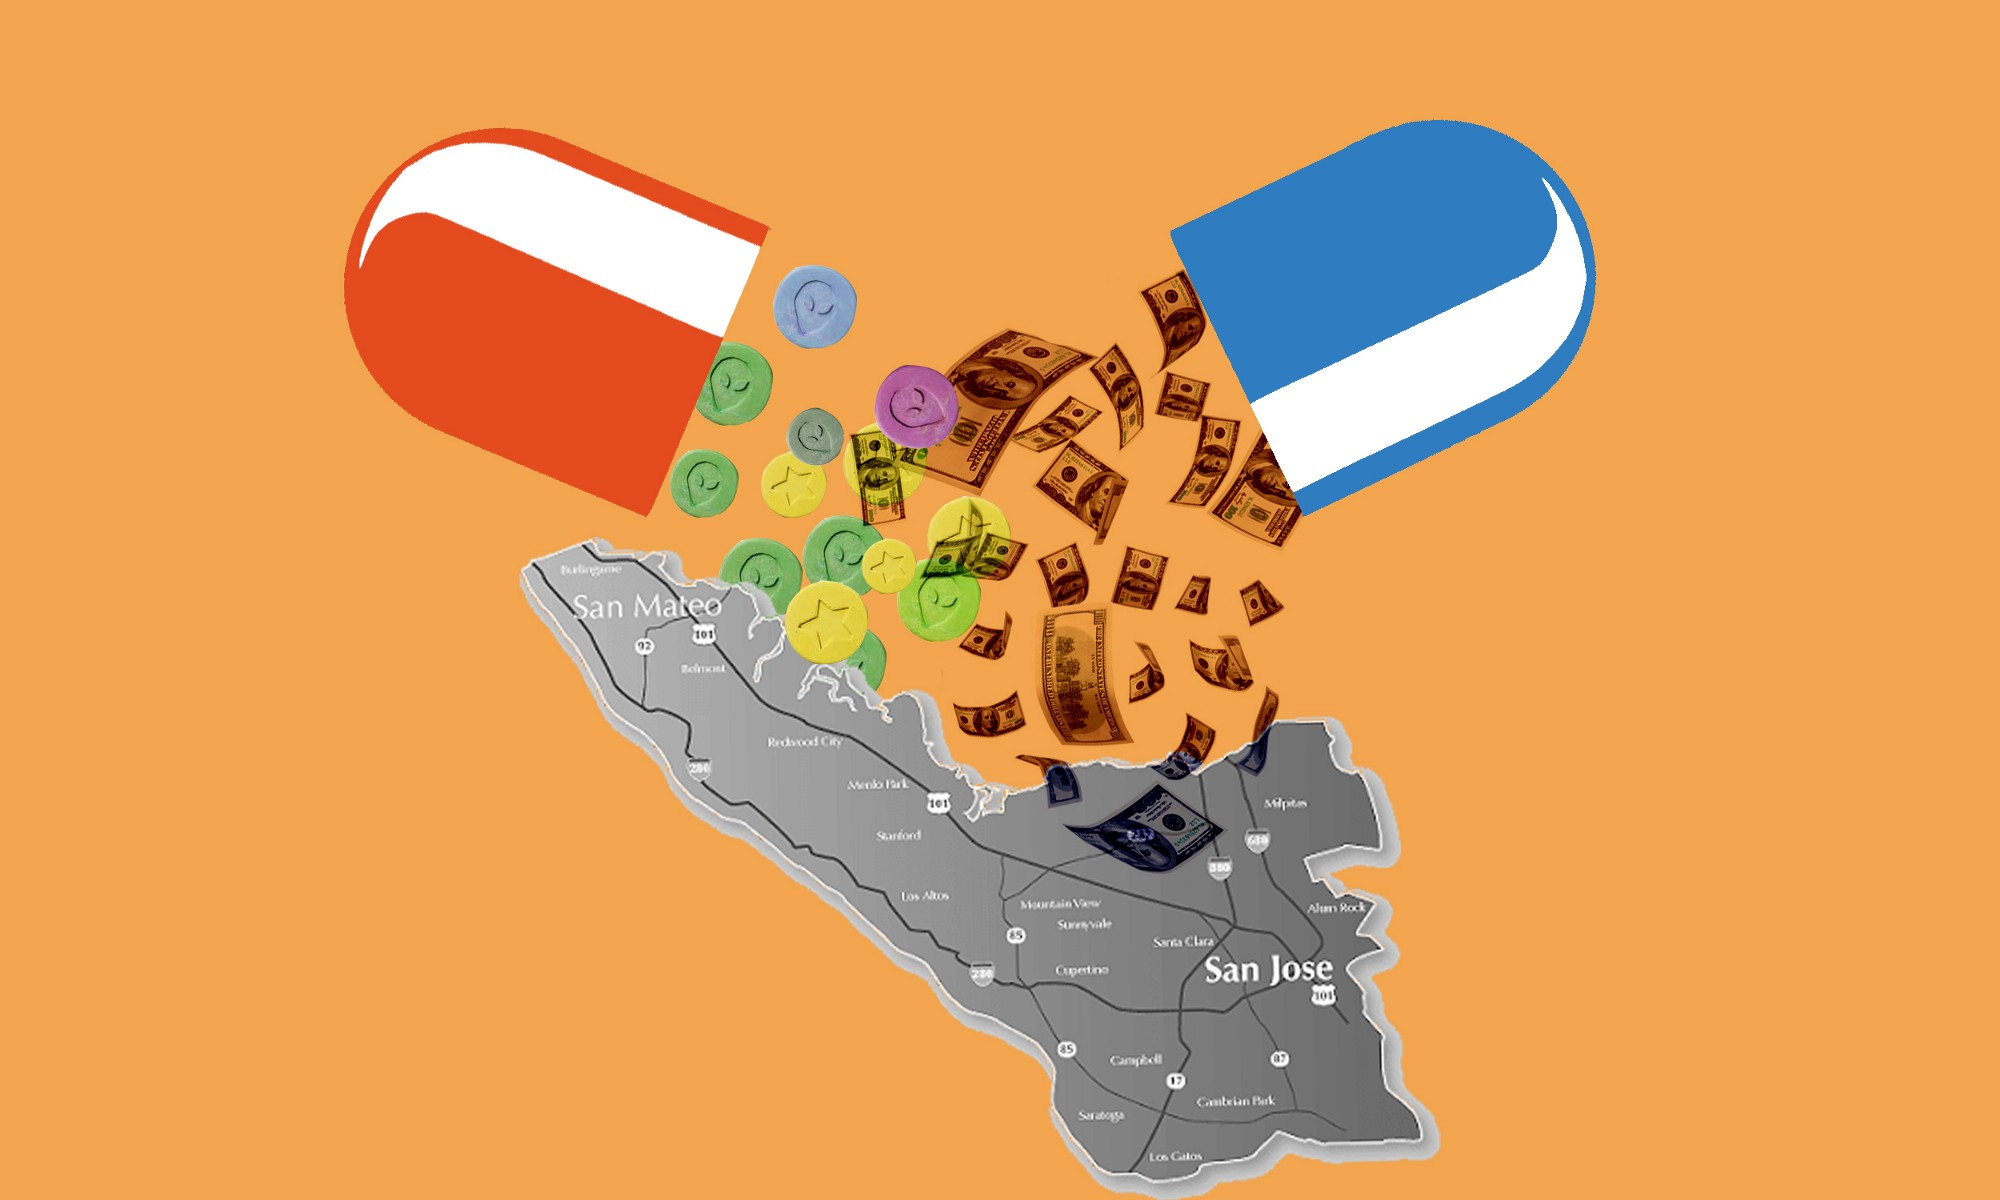 Two half-pills spilling dollar bills and MDMA pills onto an image of the Silicon Valley.